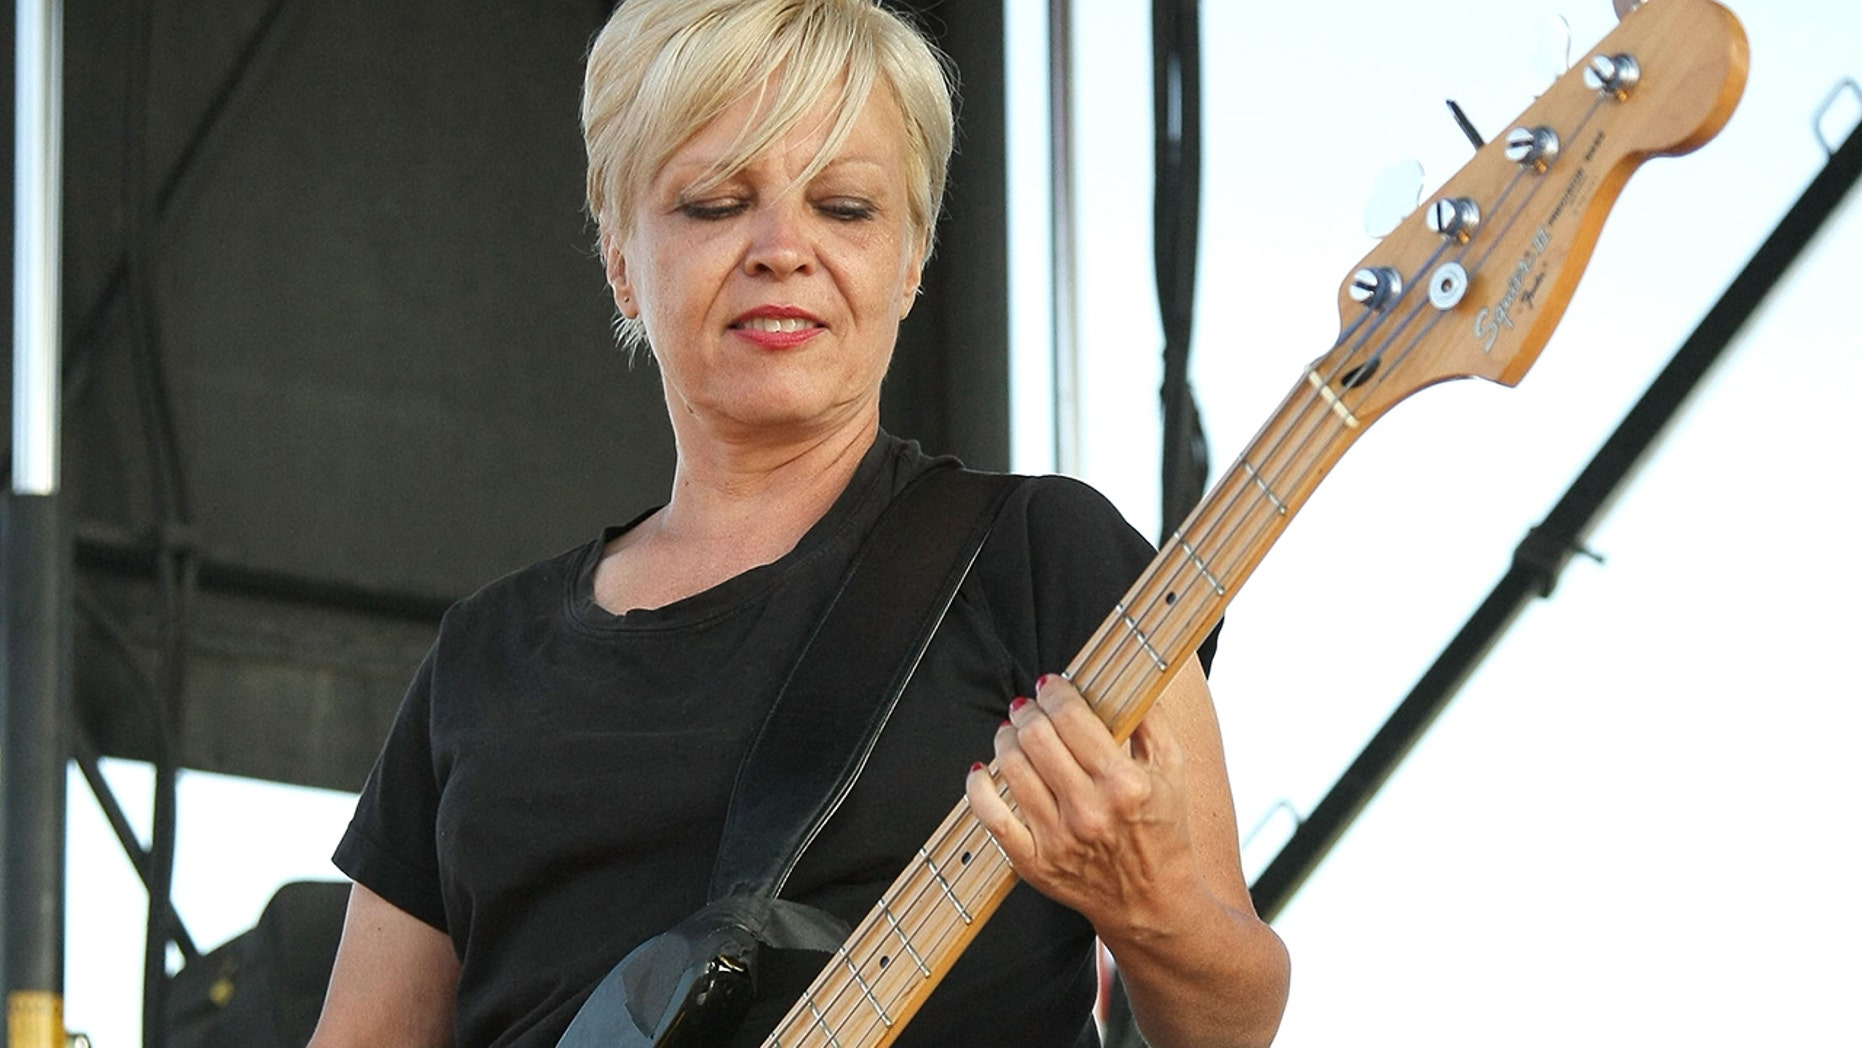 Germs Bassist Lorna Doom Dead at 60